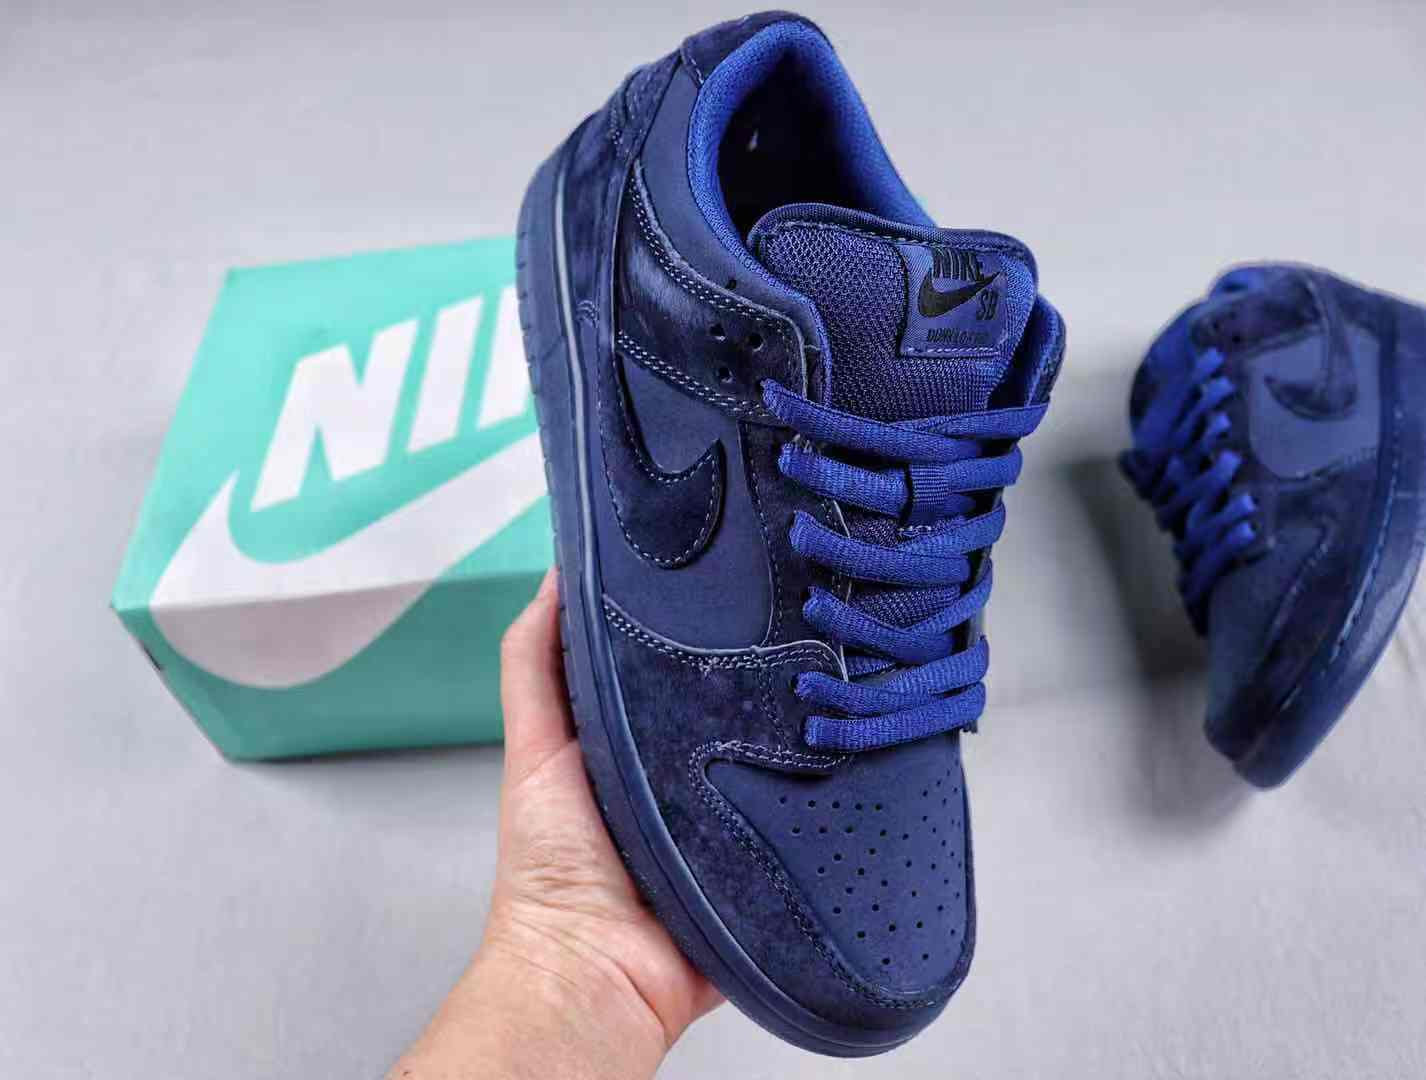 Nike SB Dunk Low Once In A Blue Moon